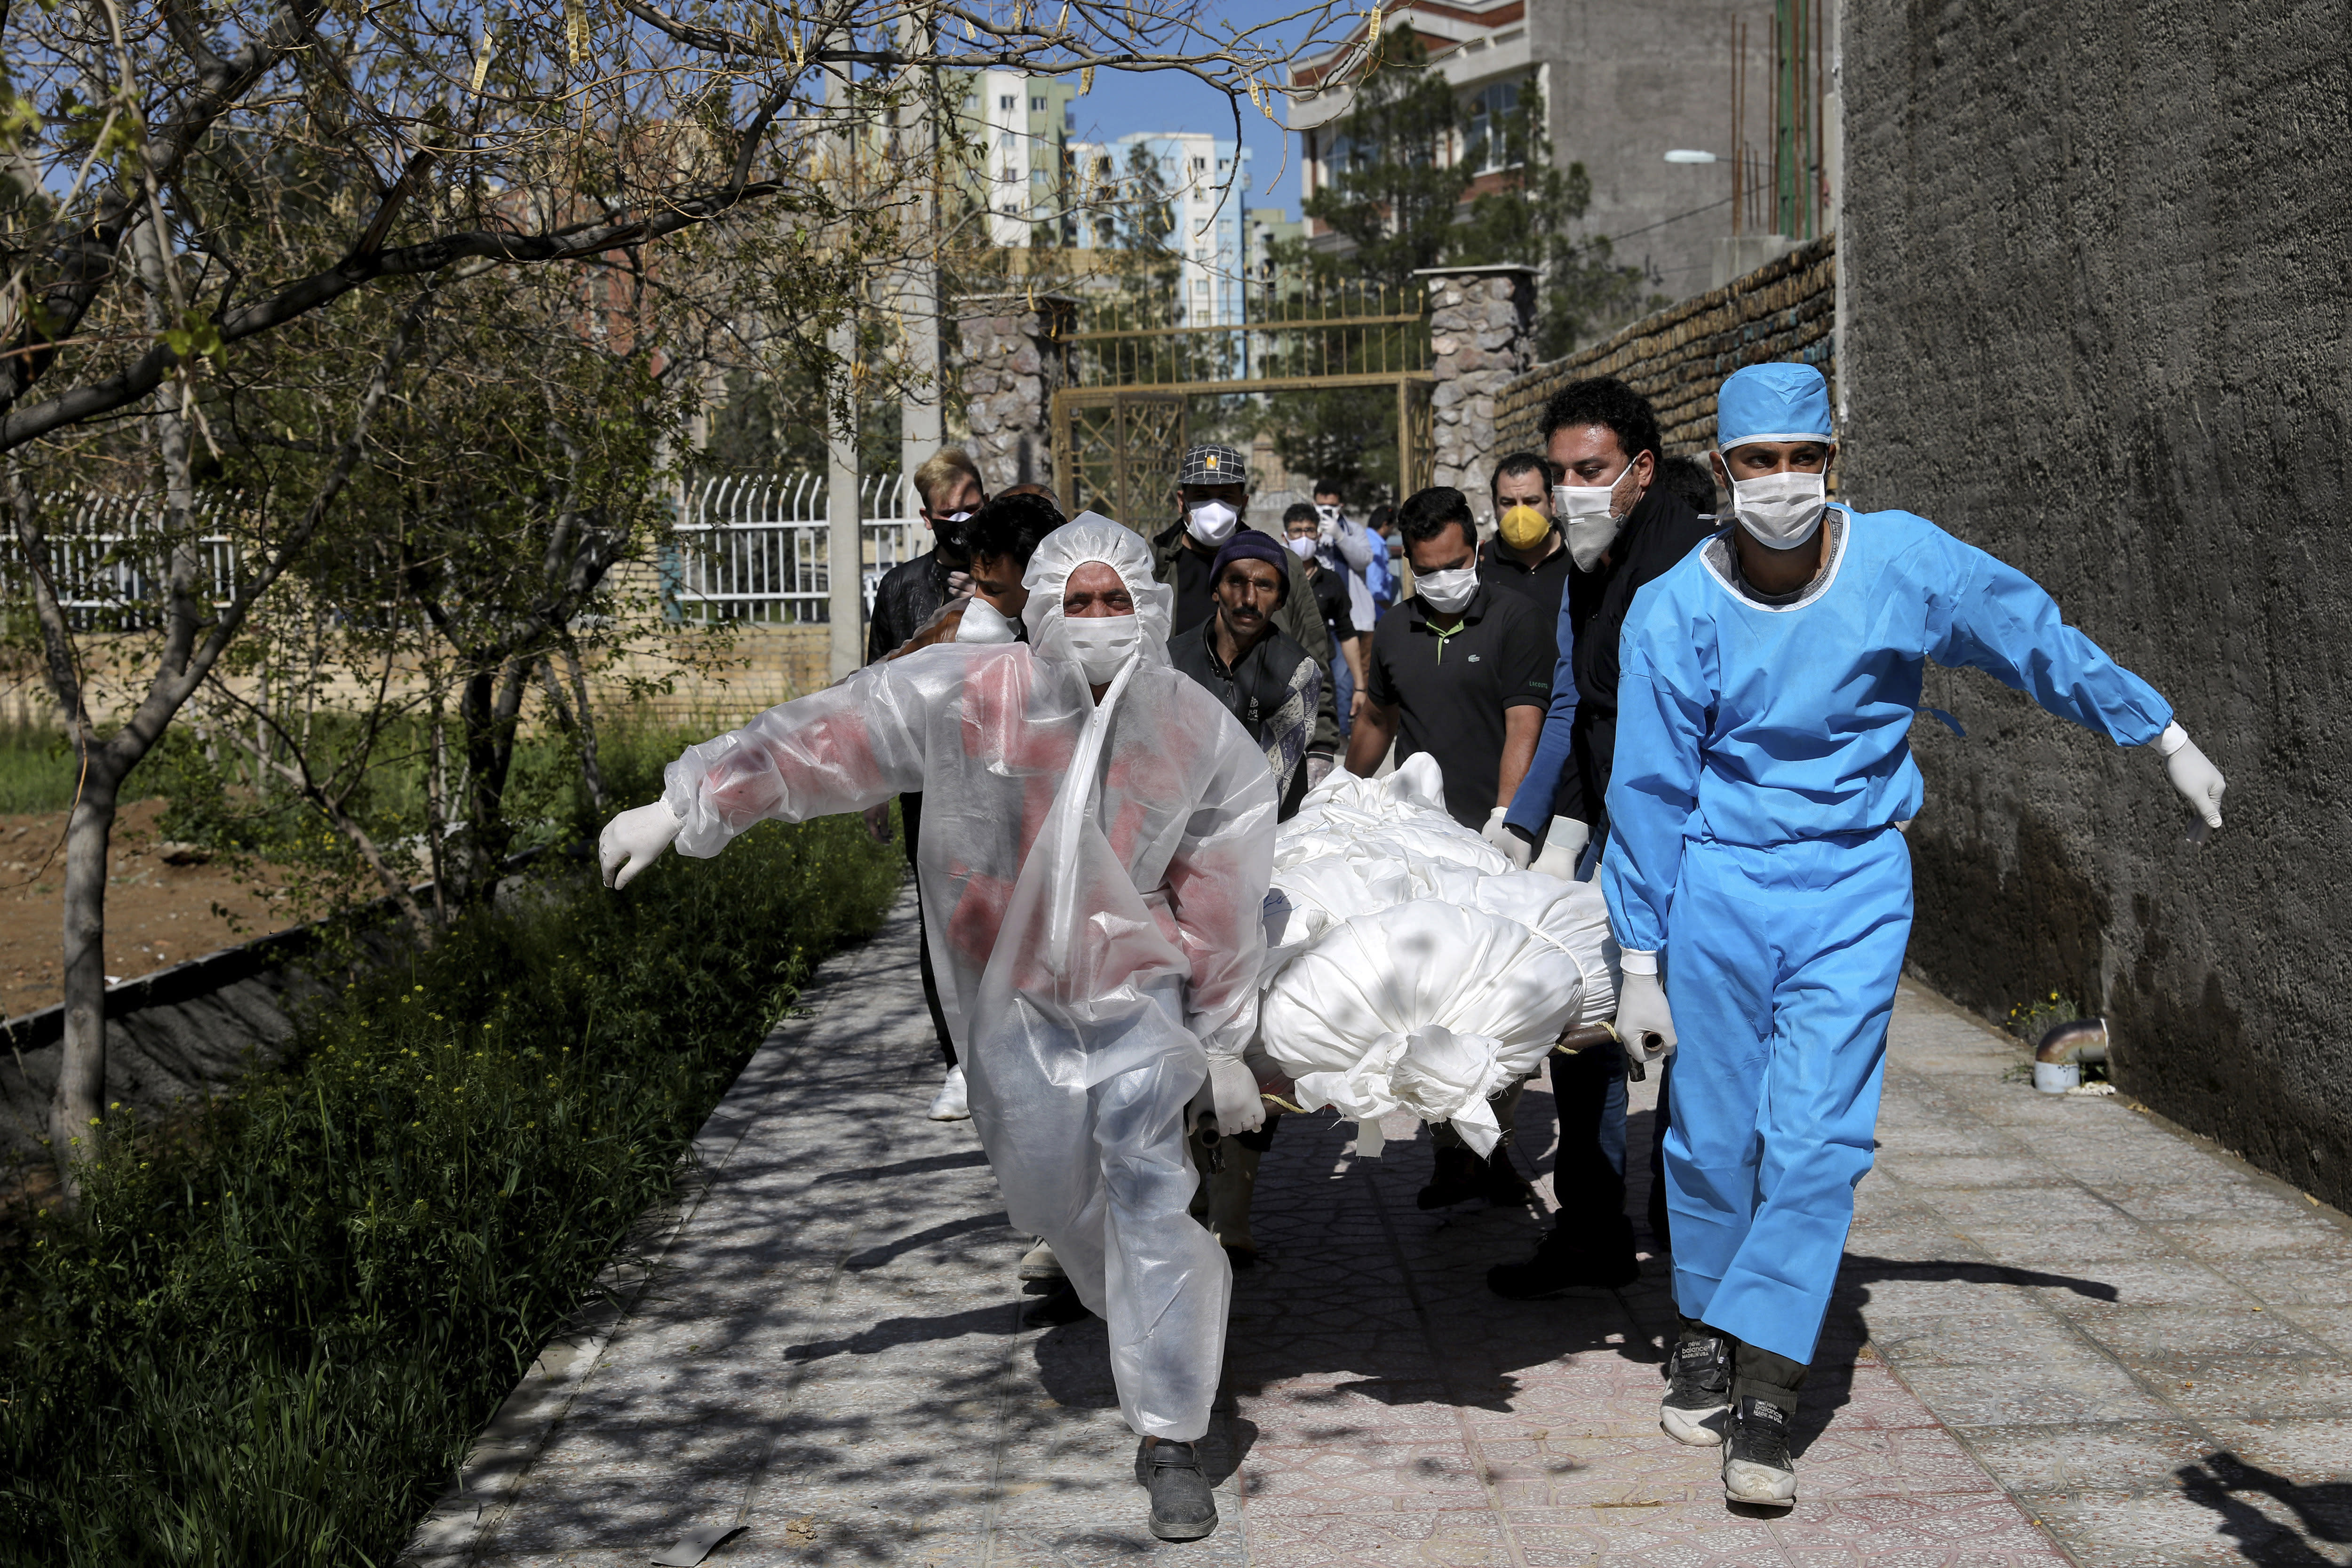 FILE - In this Monday, March 30, 2020 file photo, people carry the body of a victim who died after being infected with the new coronavirus at a cemetery just outside Tehran, Iran. Across the Middle East and parts of South Asia, bereaved families have faced traumatic restrictions on burying their dead amid the pandemic. Religion and customs that require speedy burials in the largely Muslim region have clashed with fears of COVID-19 contagion and government-mandated lockdowns. (AP Photo/Ebrahim Noroozi, File)